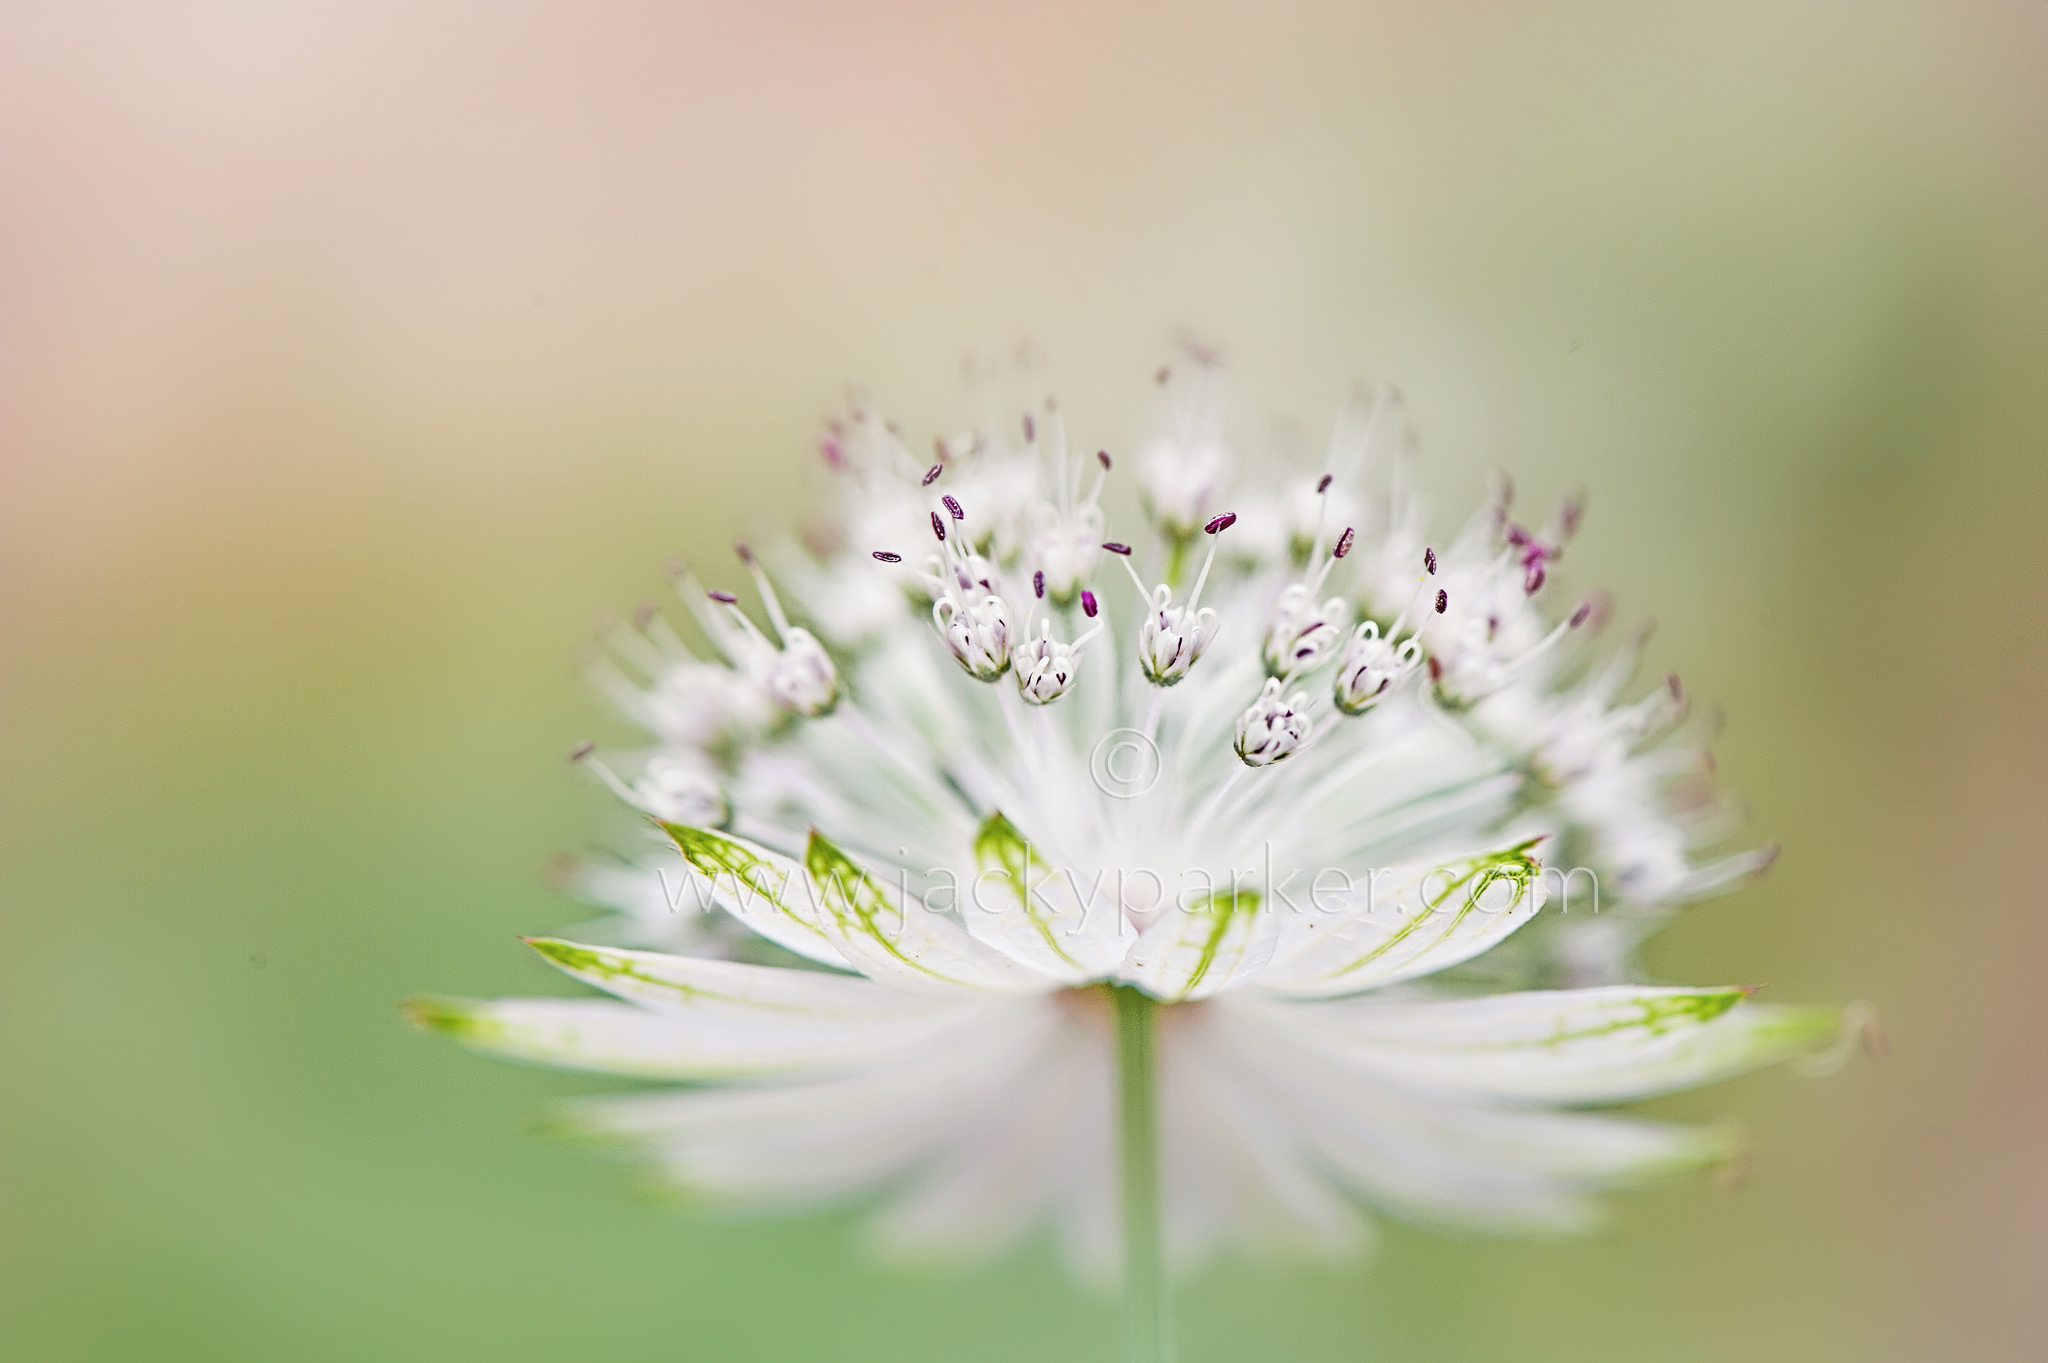 Astrantia major - 2048x1363